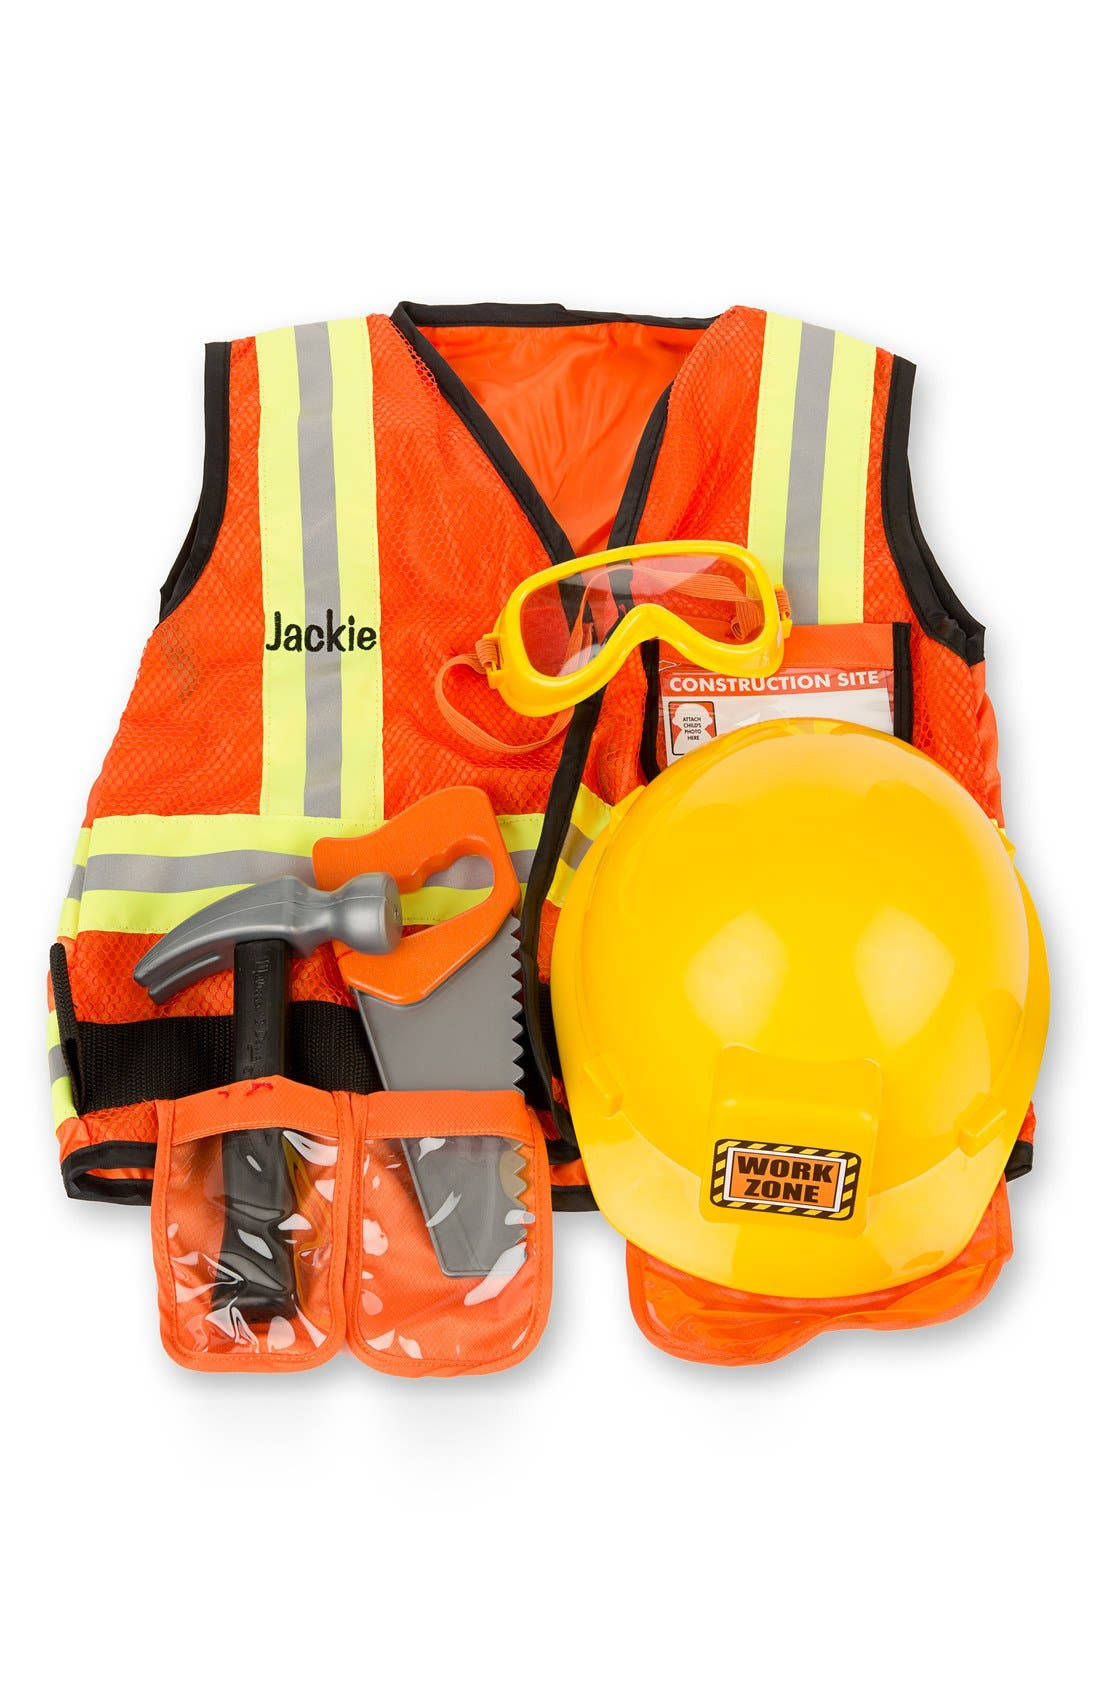 Toddler Melissa  Doug Construction Worker Personalized Costume Set